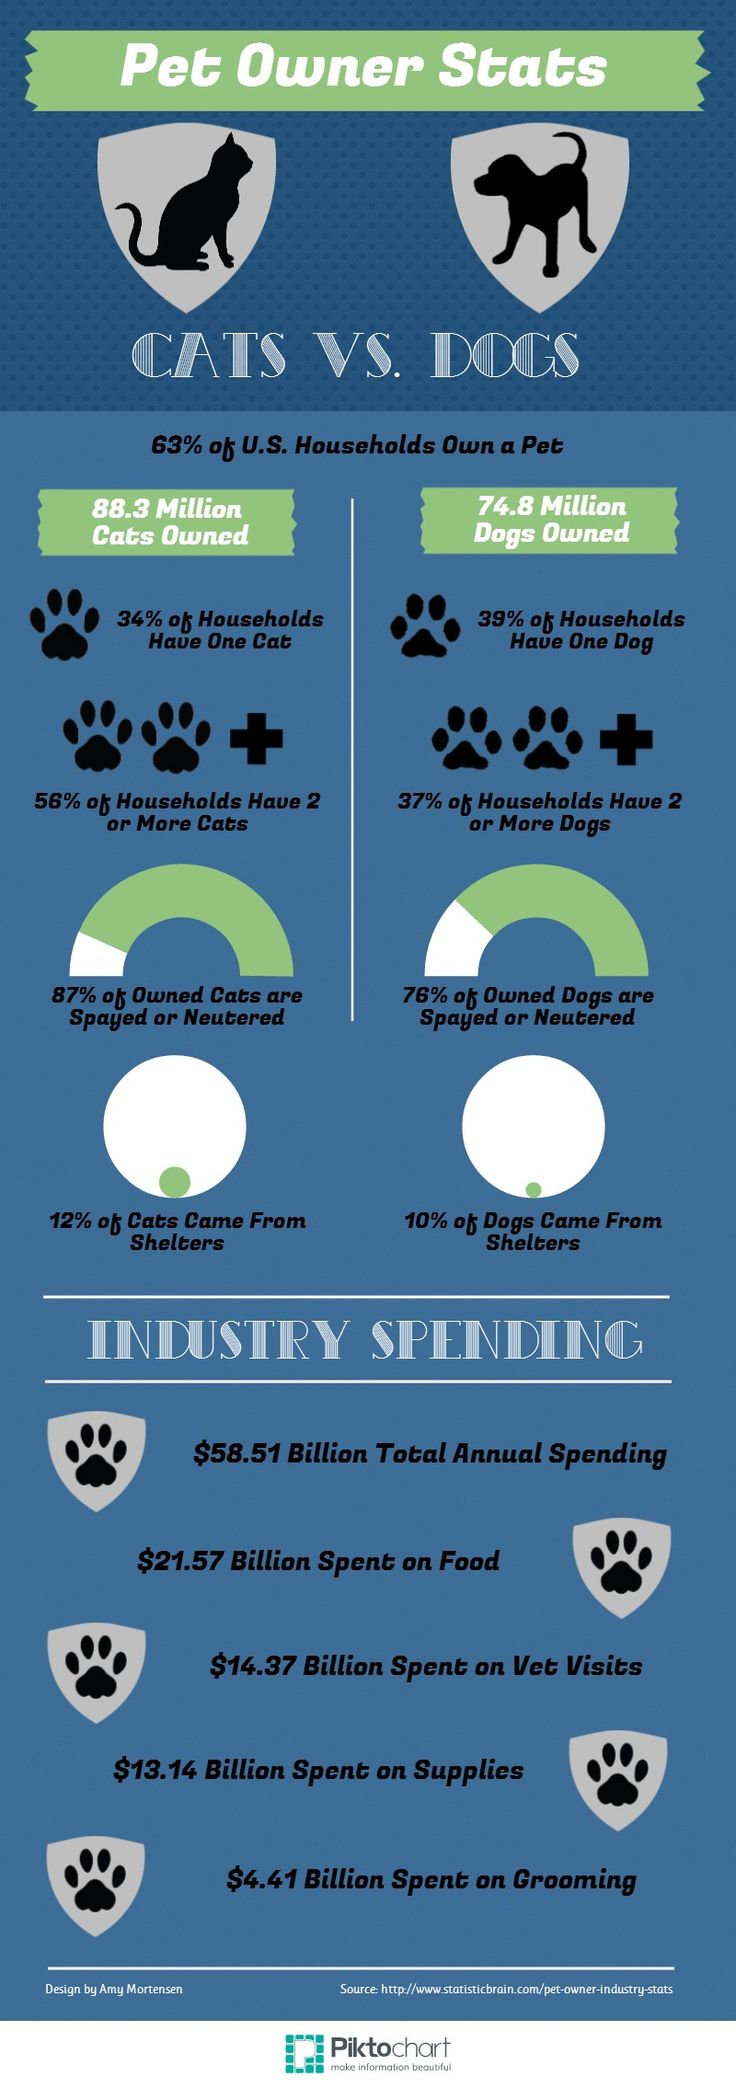 Cats vs Dogs - Pet Industry Stats | @Piktochart Infographic